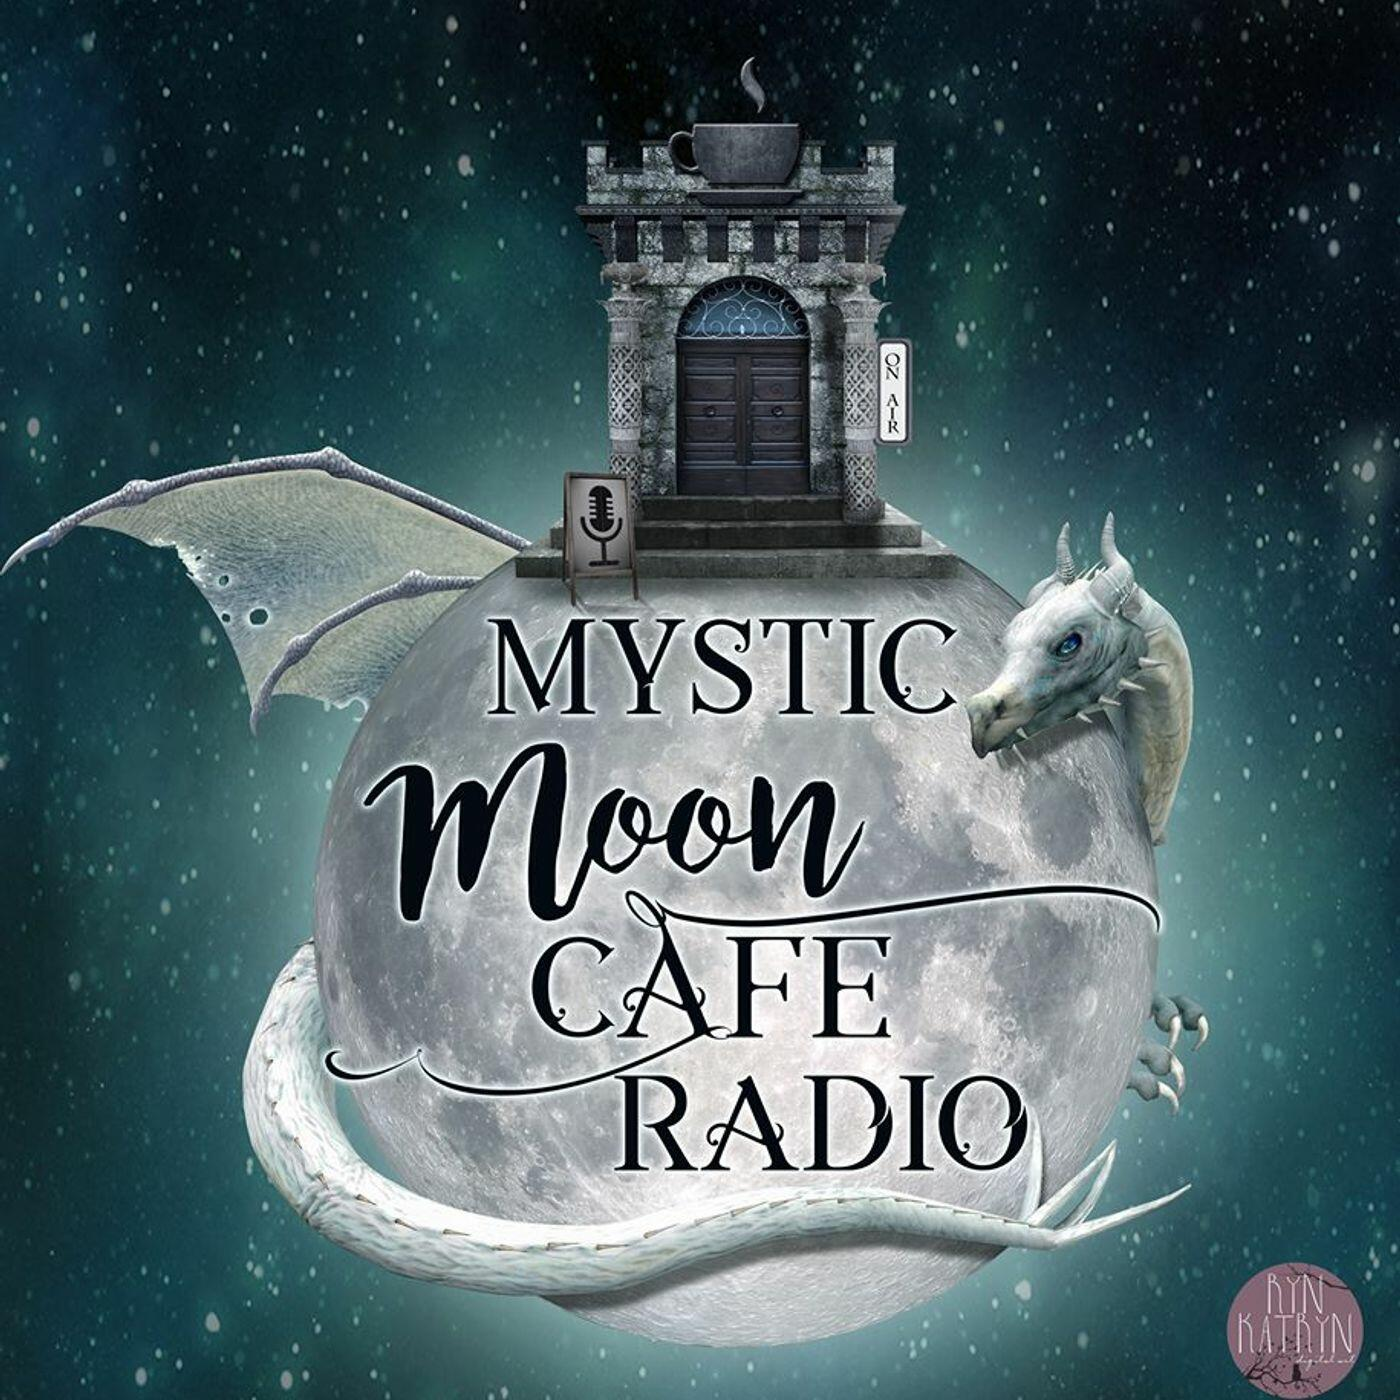 Listen to the Mystic Moon Cafe Radio Episode - Bill Bean